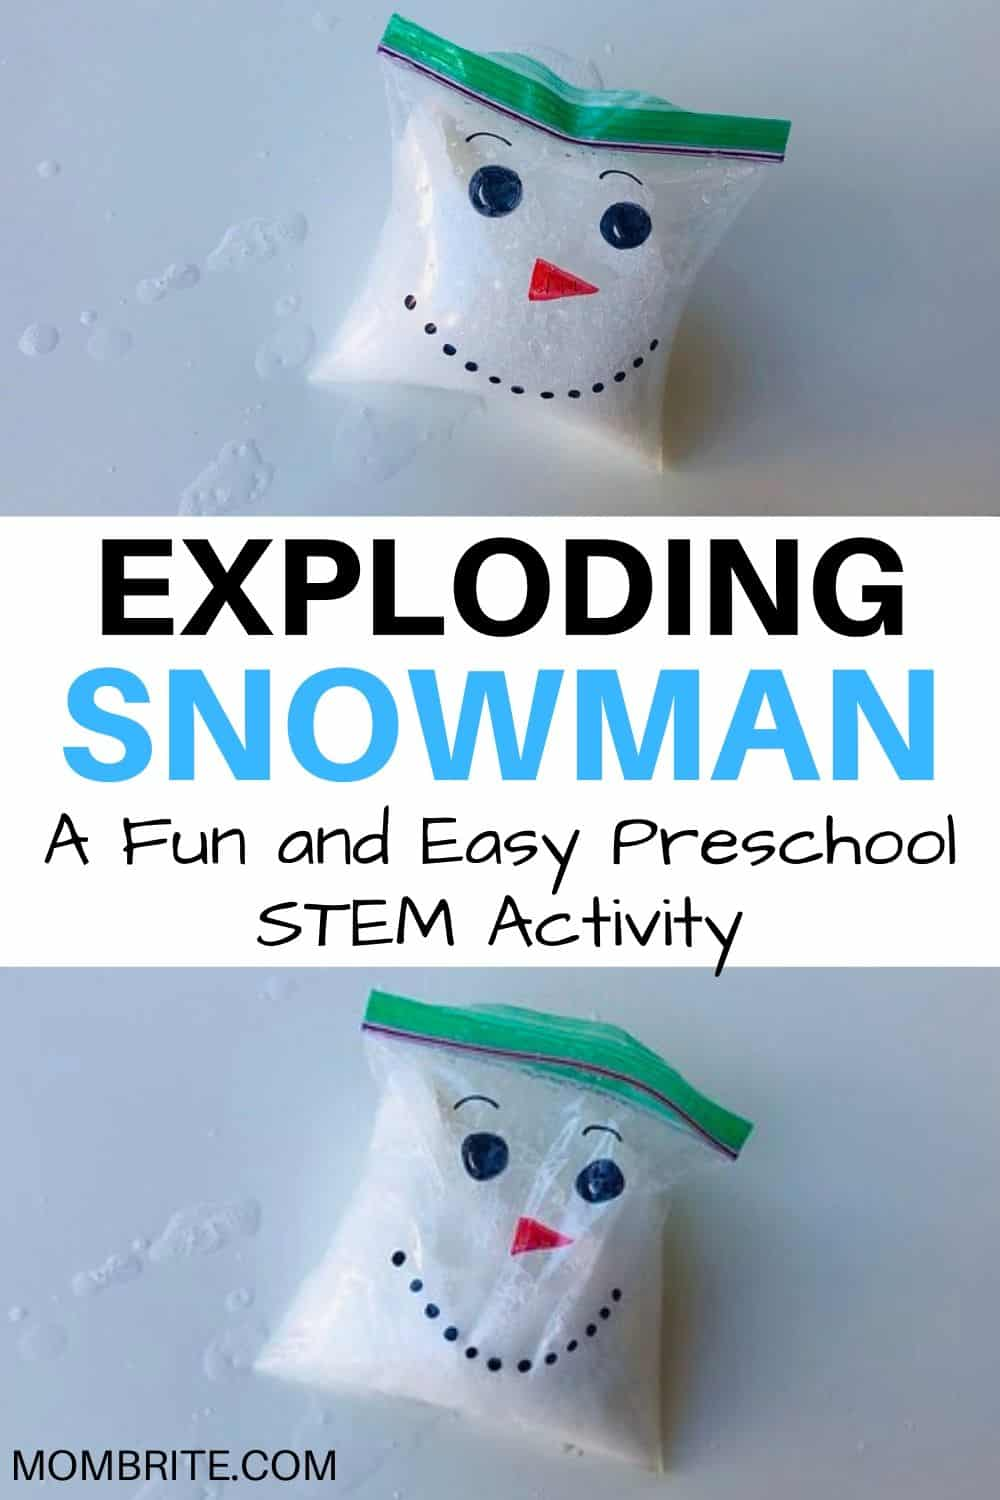 The Exploding Snowman Science Experiment Mombrite